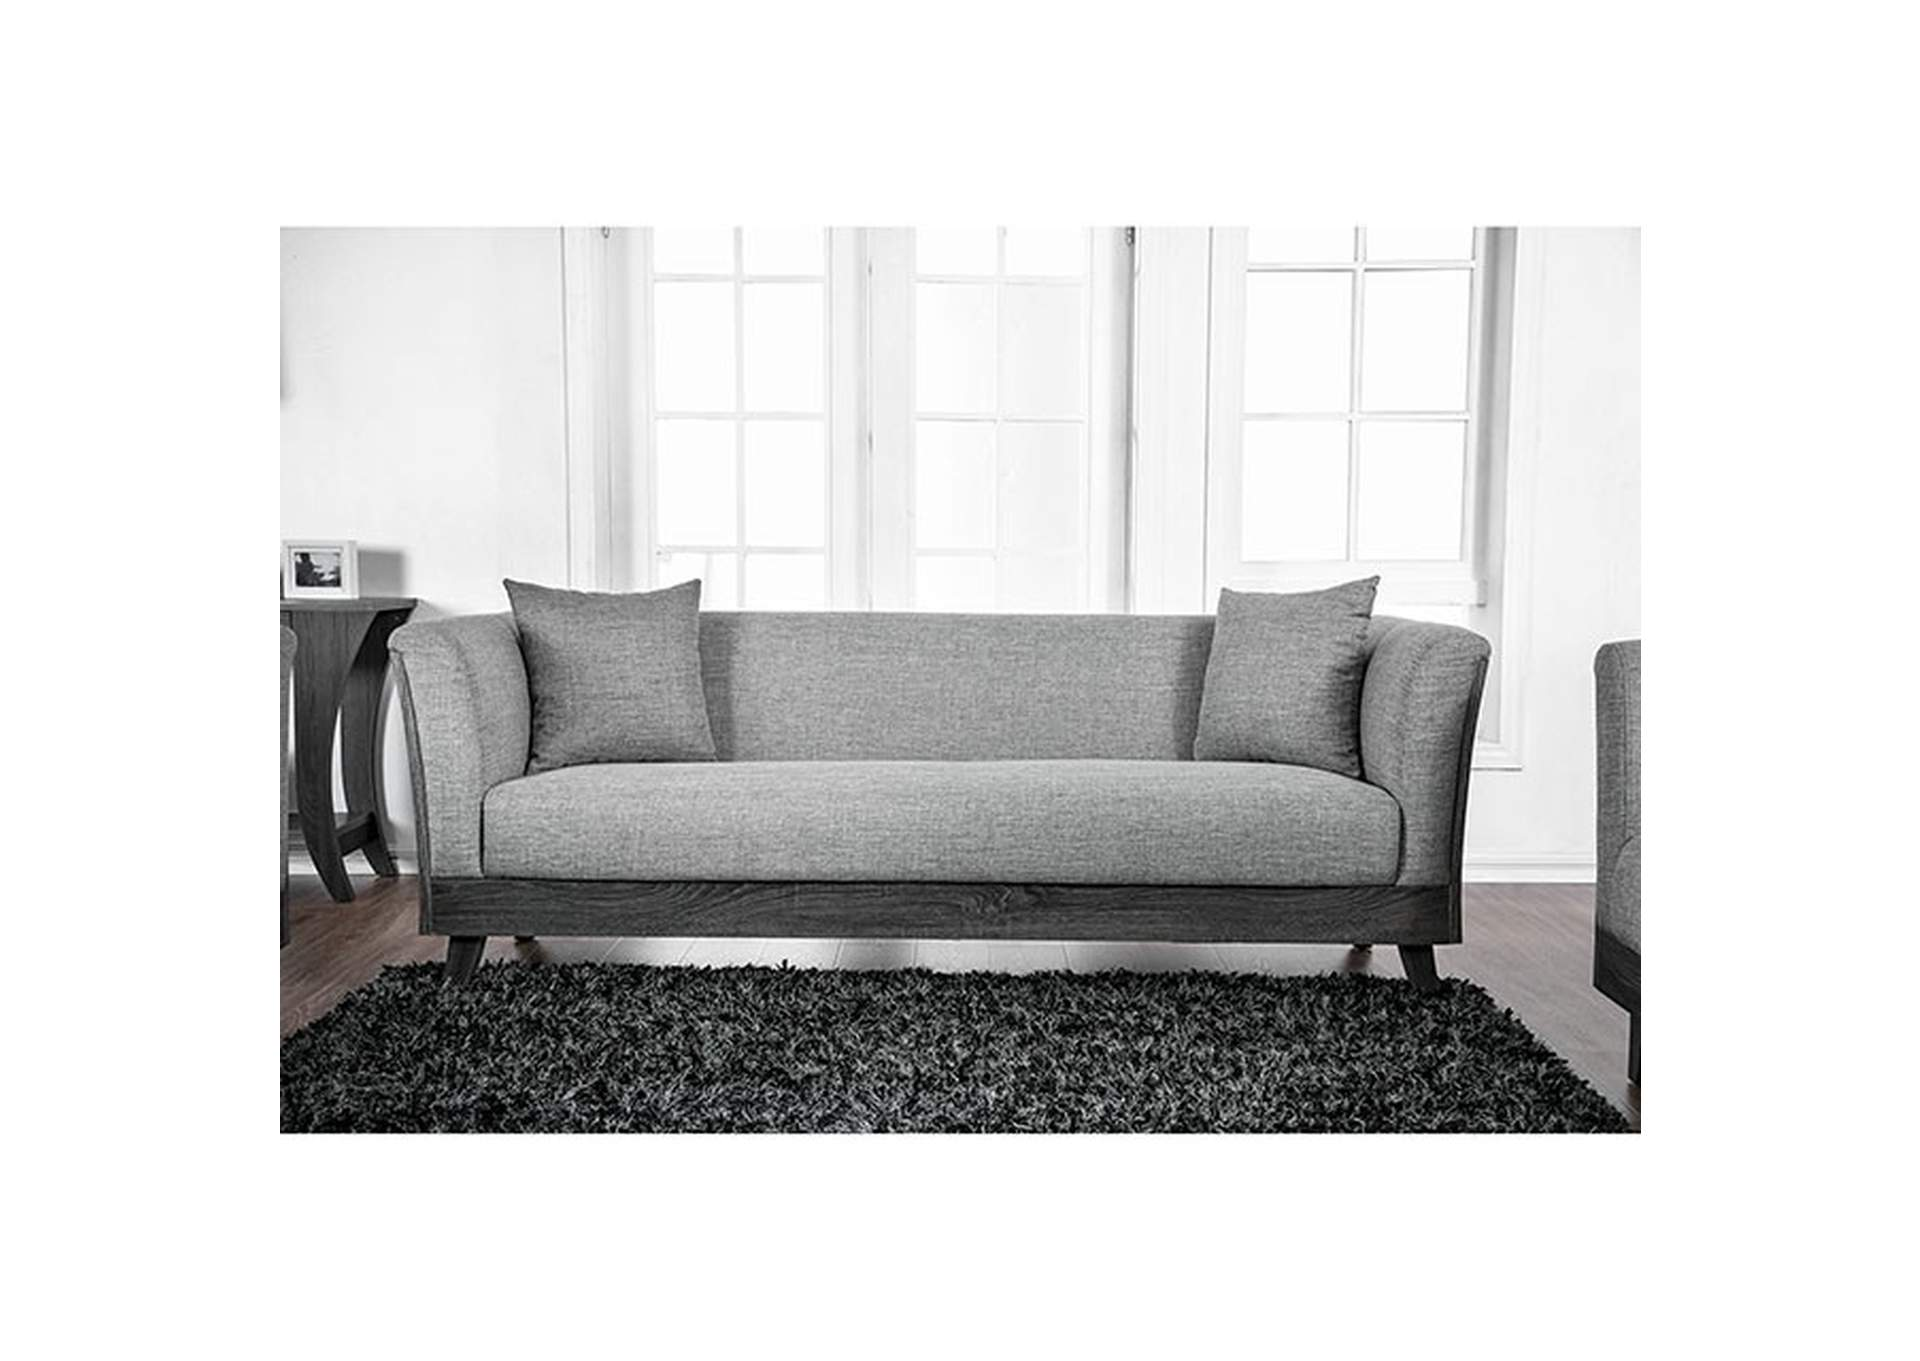 Cailin Gray Sofa,Furniture of America